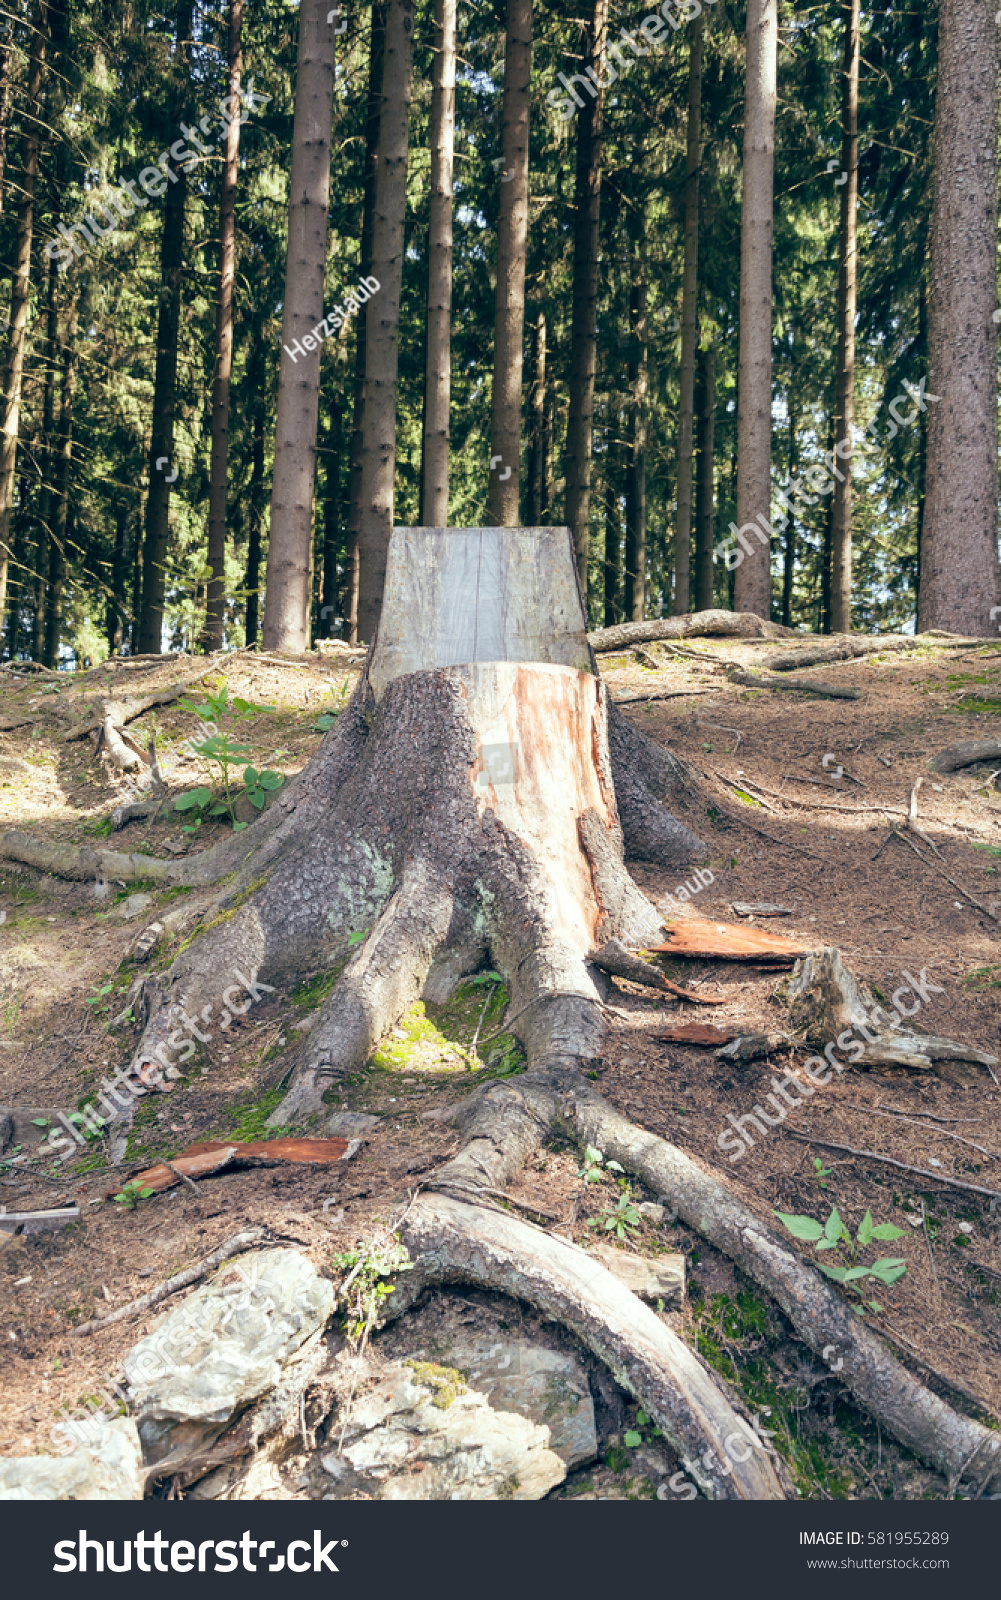 Chair made tree trunk forest stock photo 581955289 - Chair made from tree trunk ...